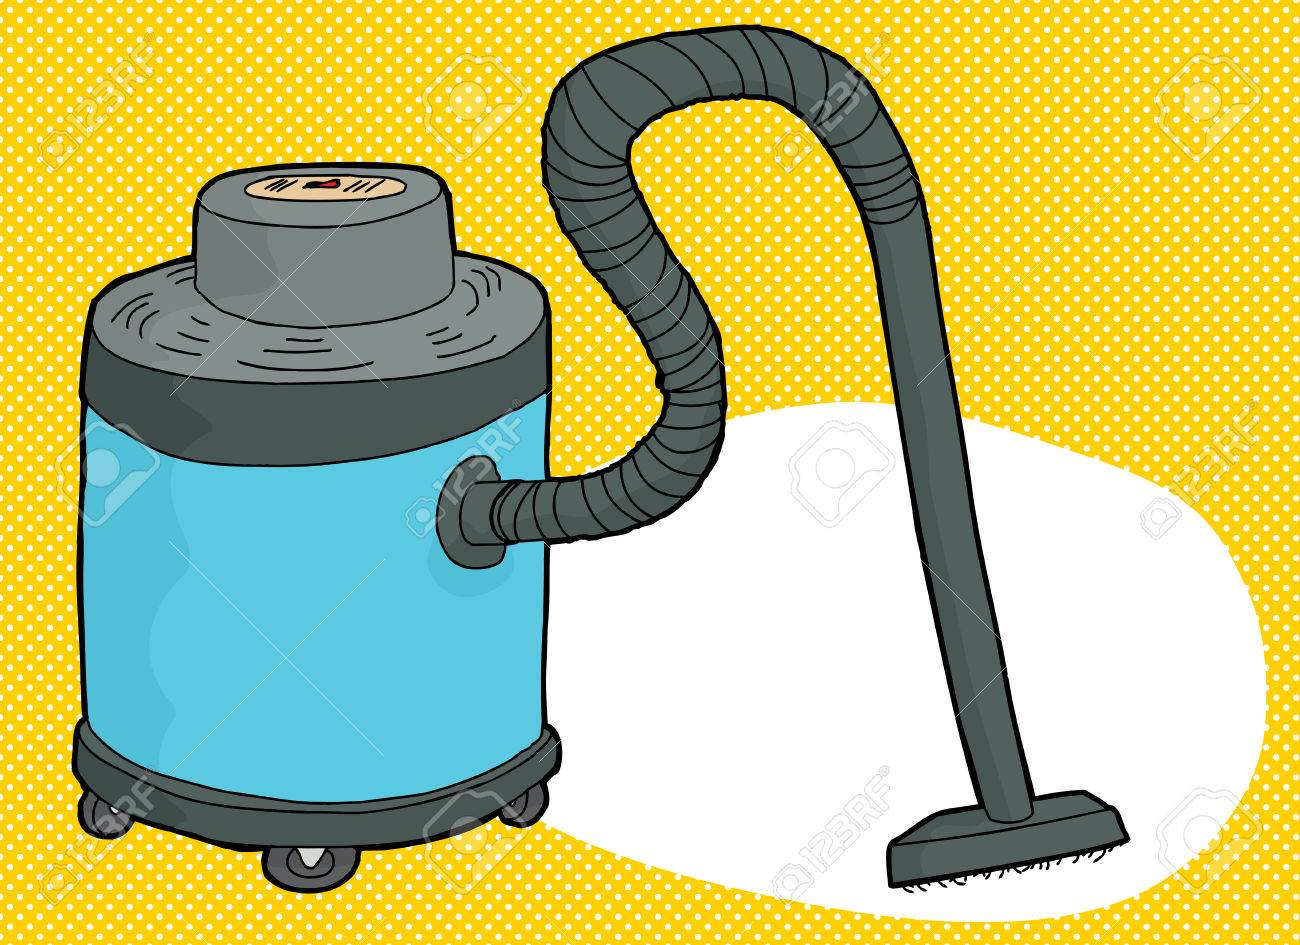 single blue cartoon large vacuum over yellow background royalty free rh 123rf com Hand Sweeper Dirt Devil Ultra Hand Vac